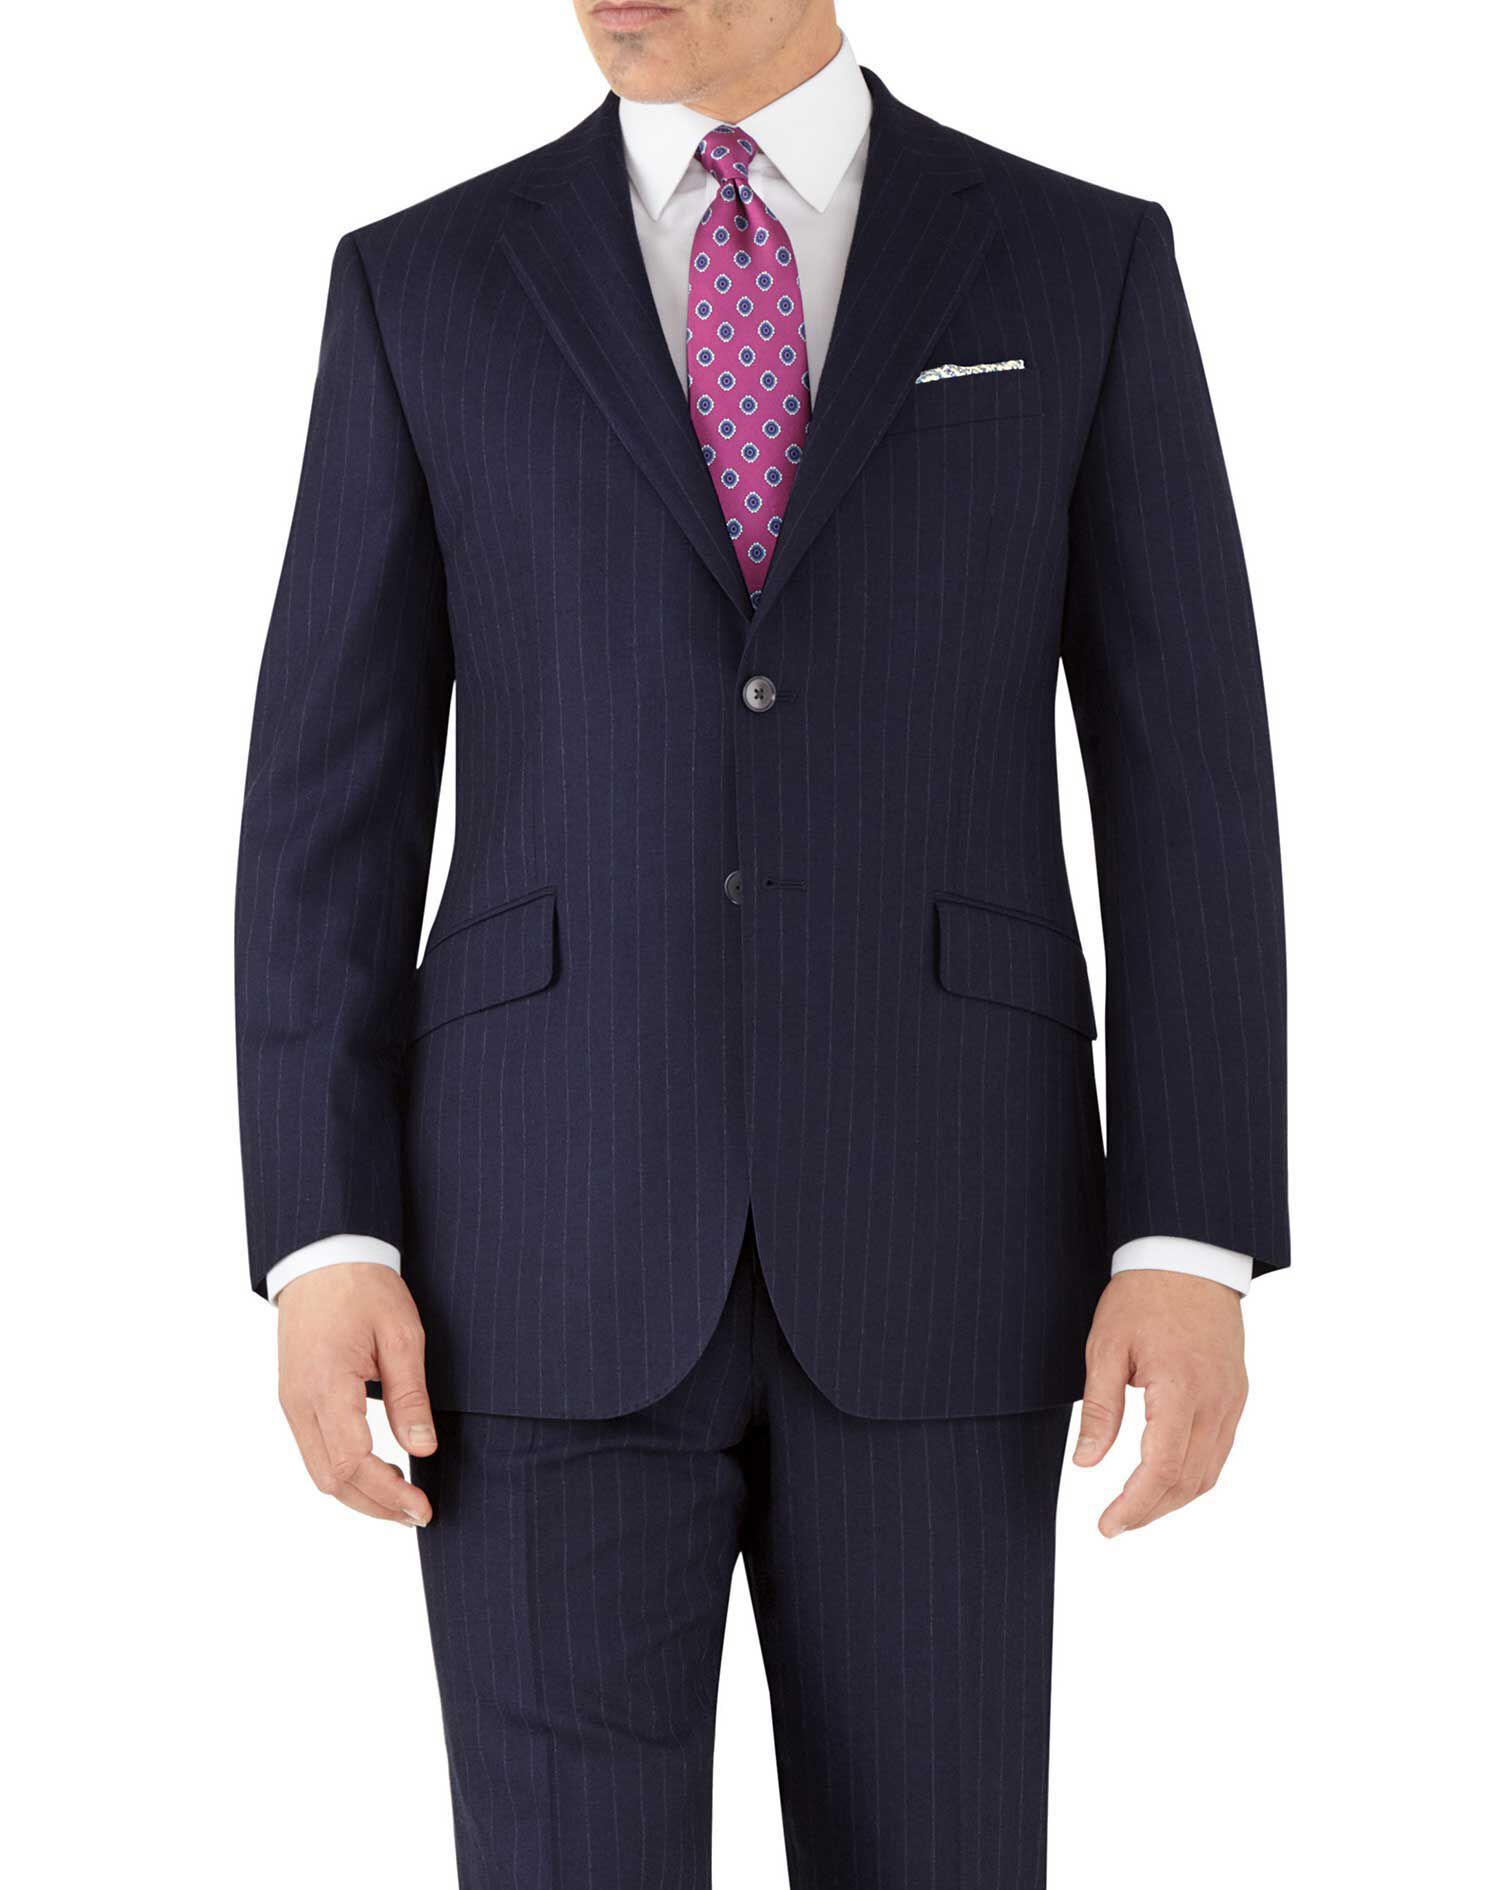 Navy Stripe Classic Fit Flannel Business Suit Wool Jacket Size 48 Regular by Charles Tyrwhitt